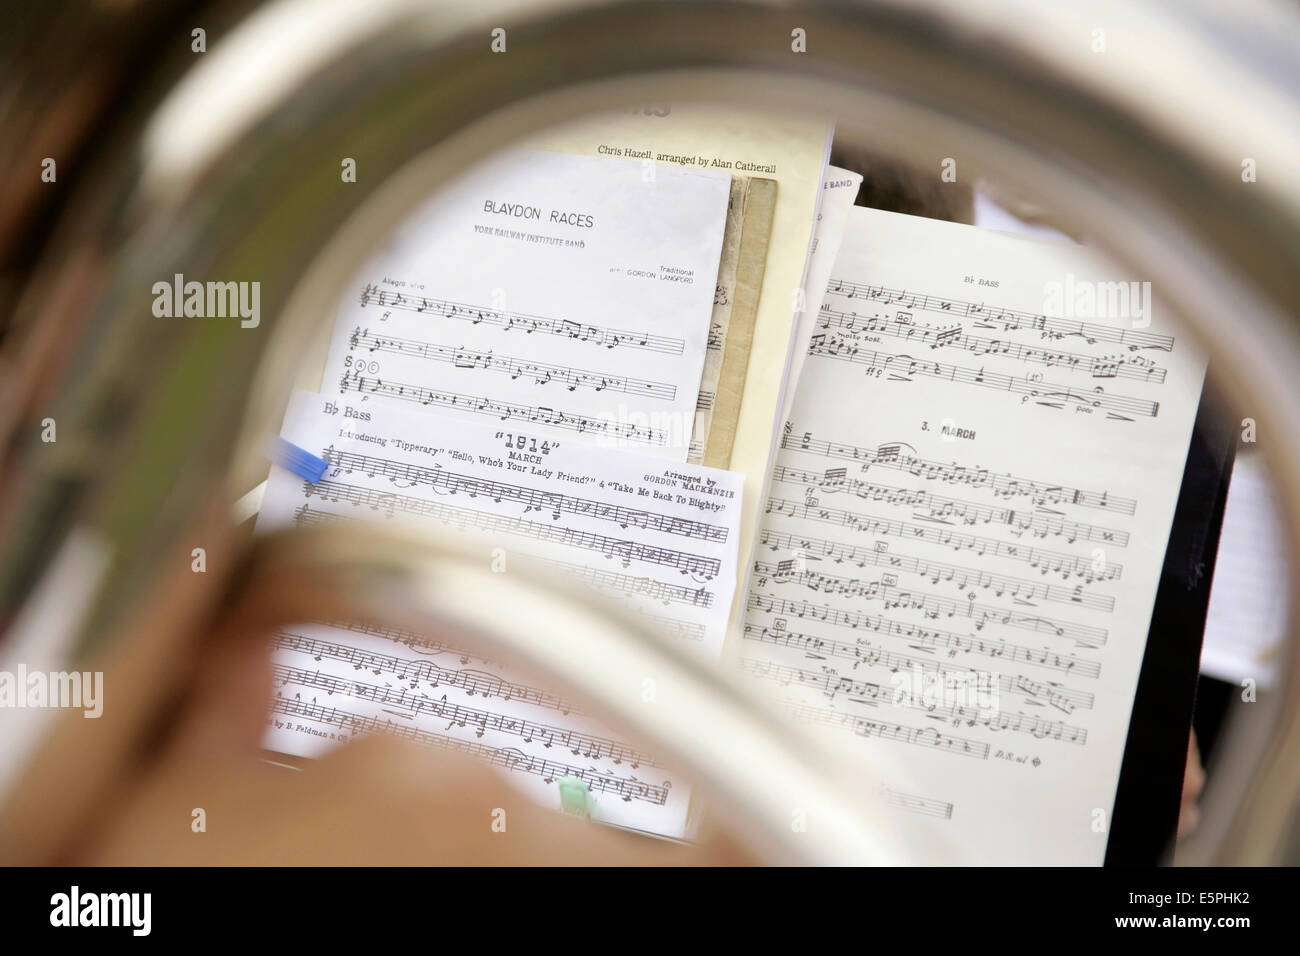 Brass bandsman with sheet music for the Blaydon Races, Tipperary and others. - Stock Image